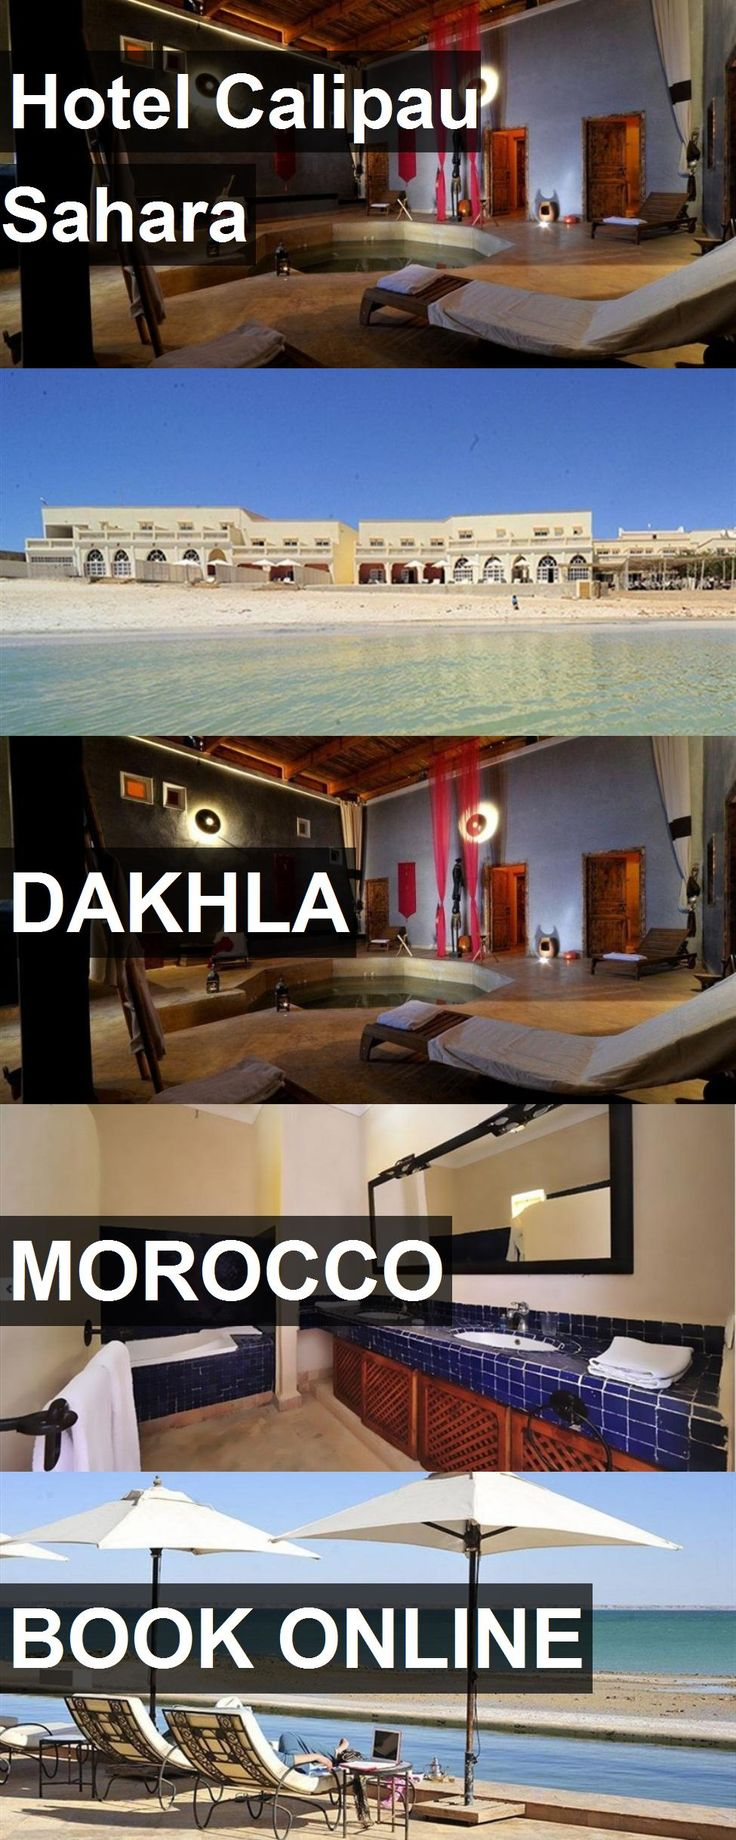 Hotel Hotel Calipau Sahara in Dakhla, Morocco. For more information, photos, reviews and best prices please follow the link. #Morocco #Dakhla #HotelCalipauSahara #hotel #travel #vacation